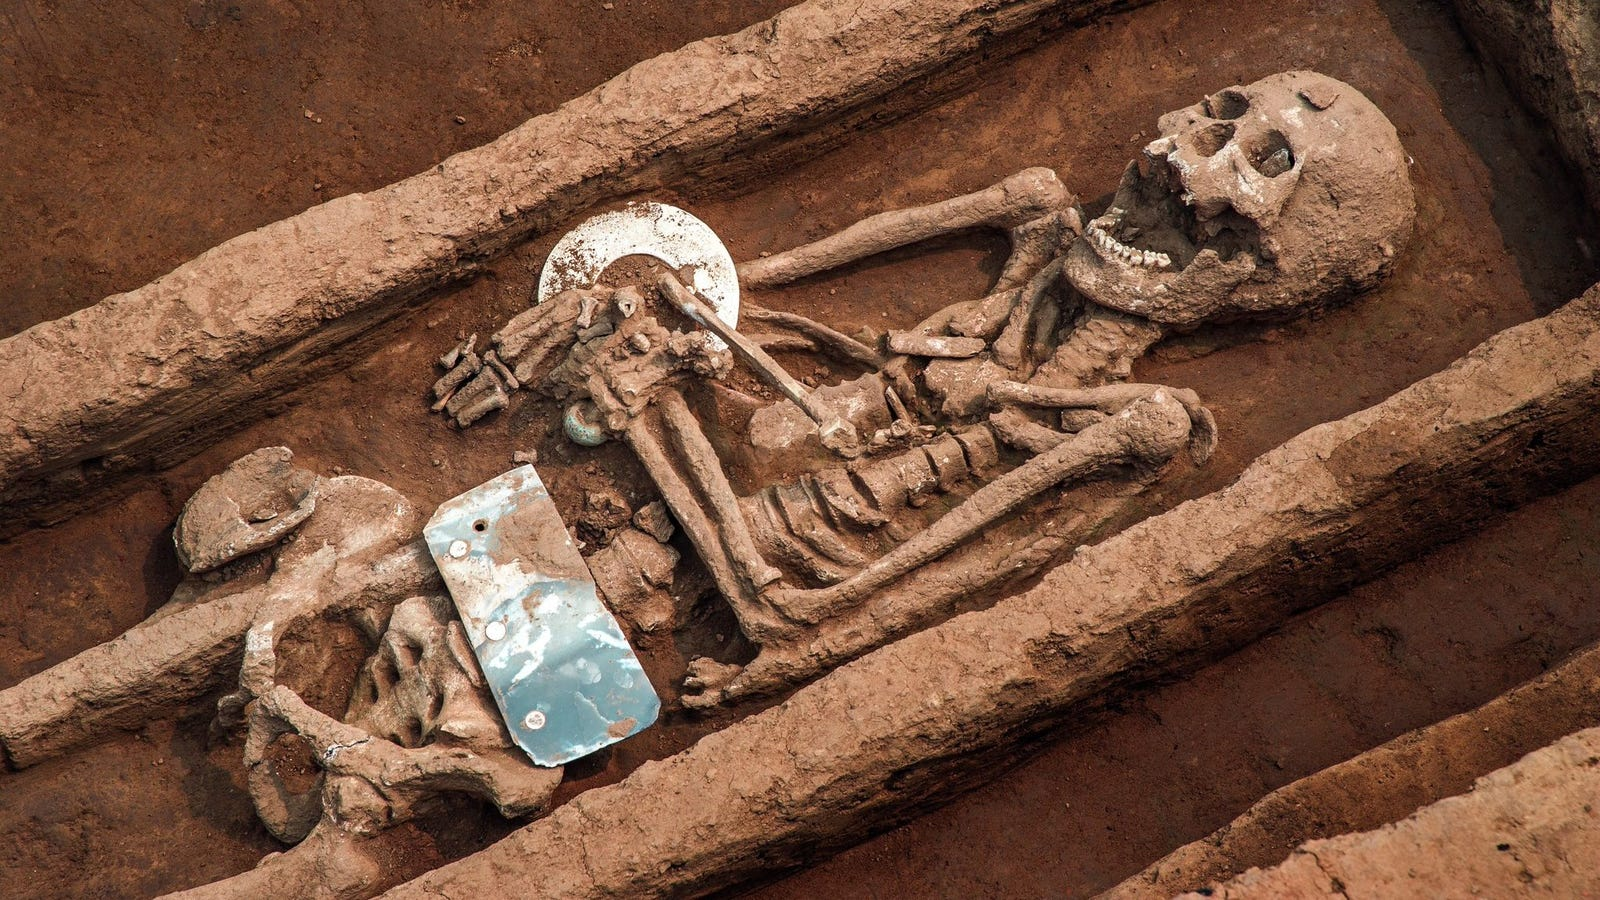 Archaeologists Unearth 'Grave of Giants' in China